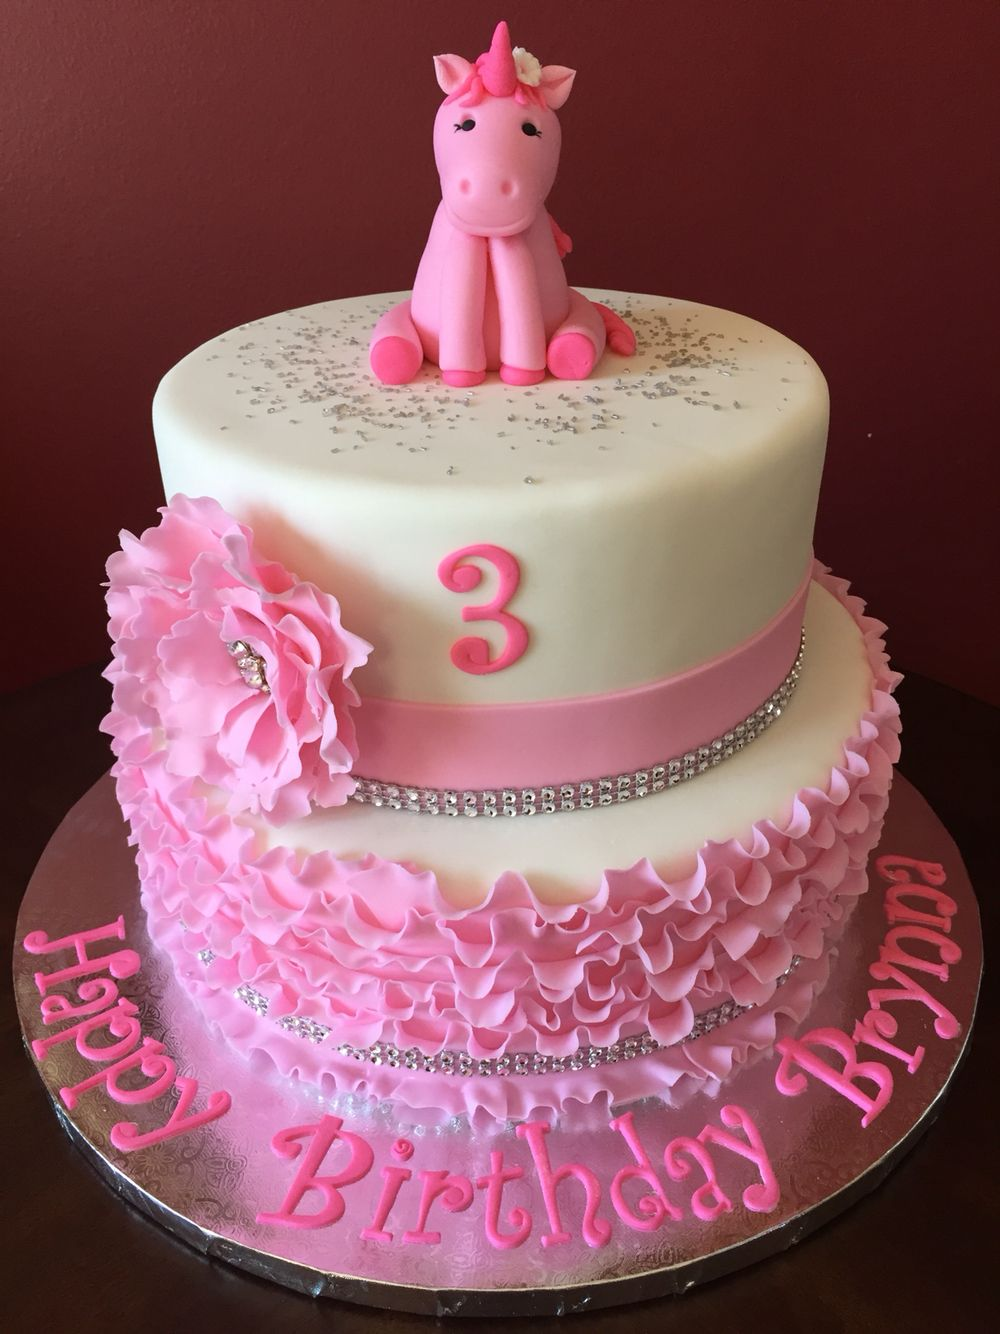 Pink Unicorn Birthday Cake Birthday Cakes Pinterest Birthday